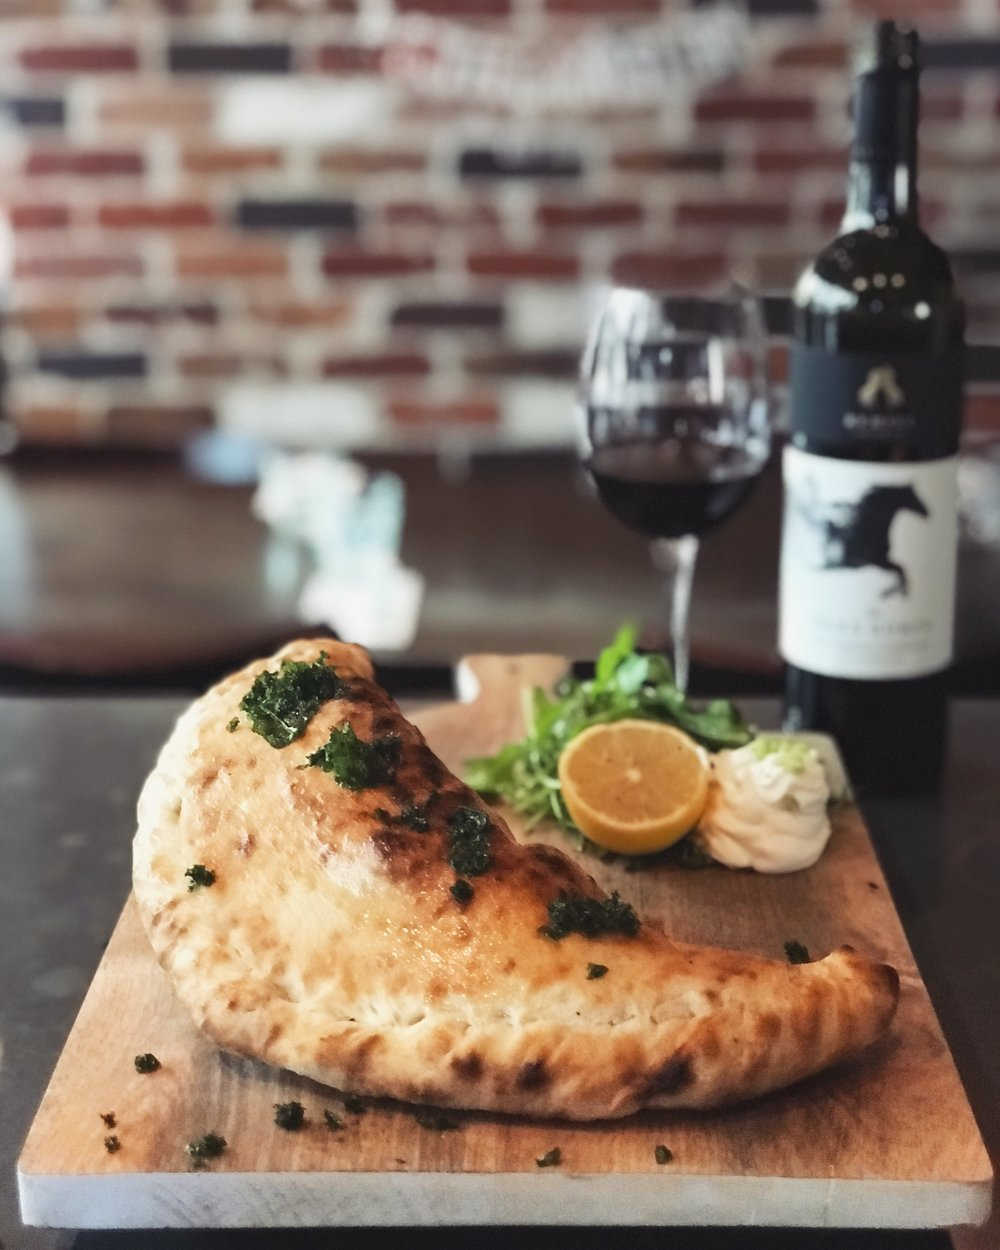 17-28 April - Spicy Stuffed CalzoneLarge wood-fire pizza pocket stuffed with the most tender spicy sous vide beef cheeks, fresh ricotta and chives.Recommended with a glass of Malbec or Pinot Noir.